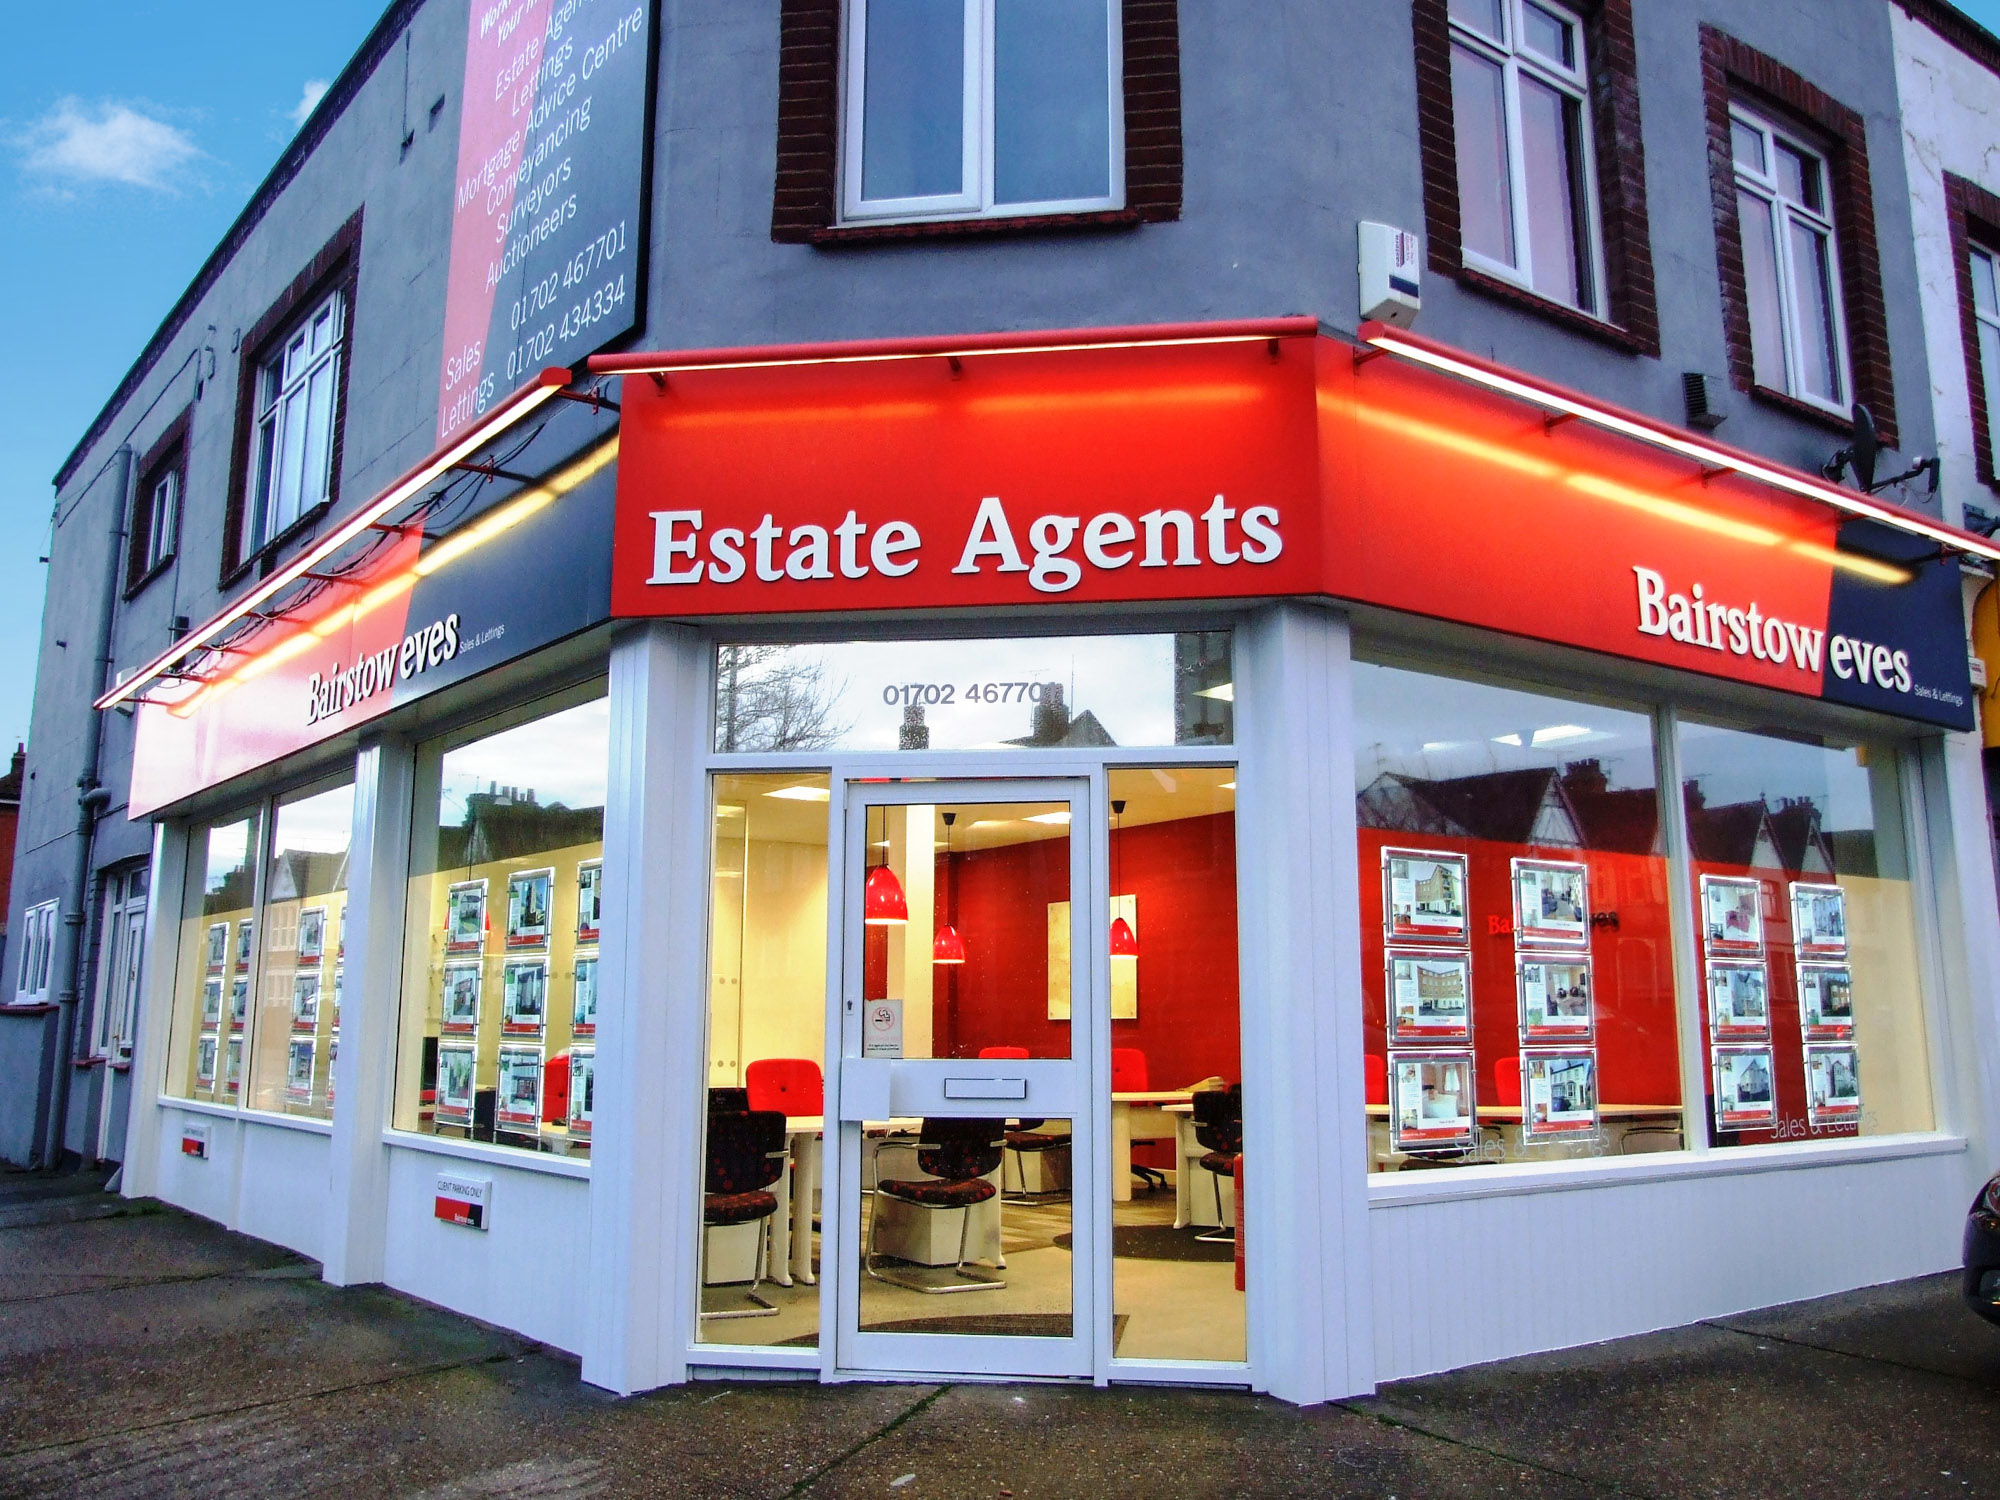 Bairstow Eves Estate Agents Southend-on-Sea